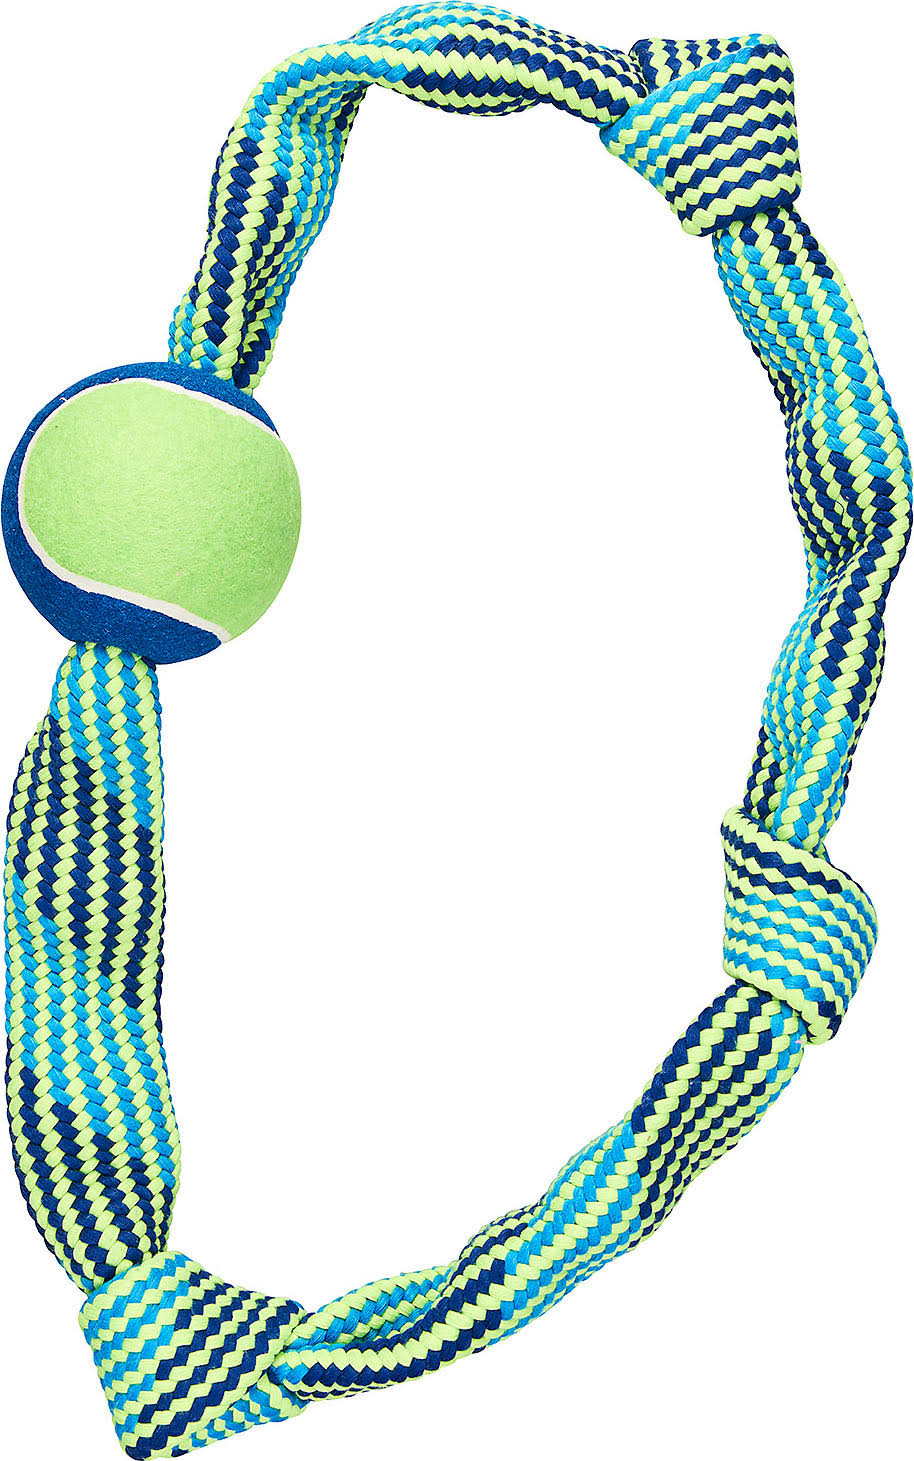 Ethical Dog Colorful Rope Knot Ring - XLarge